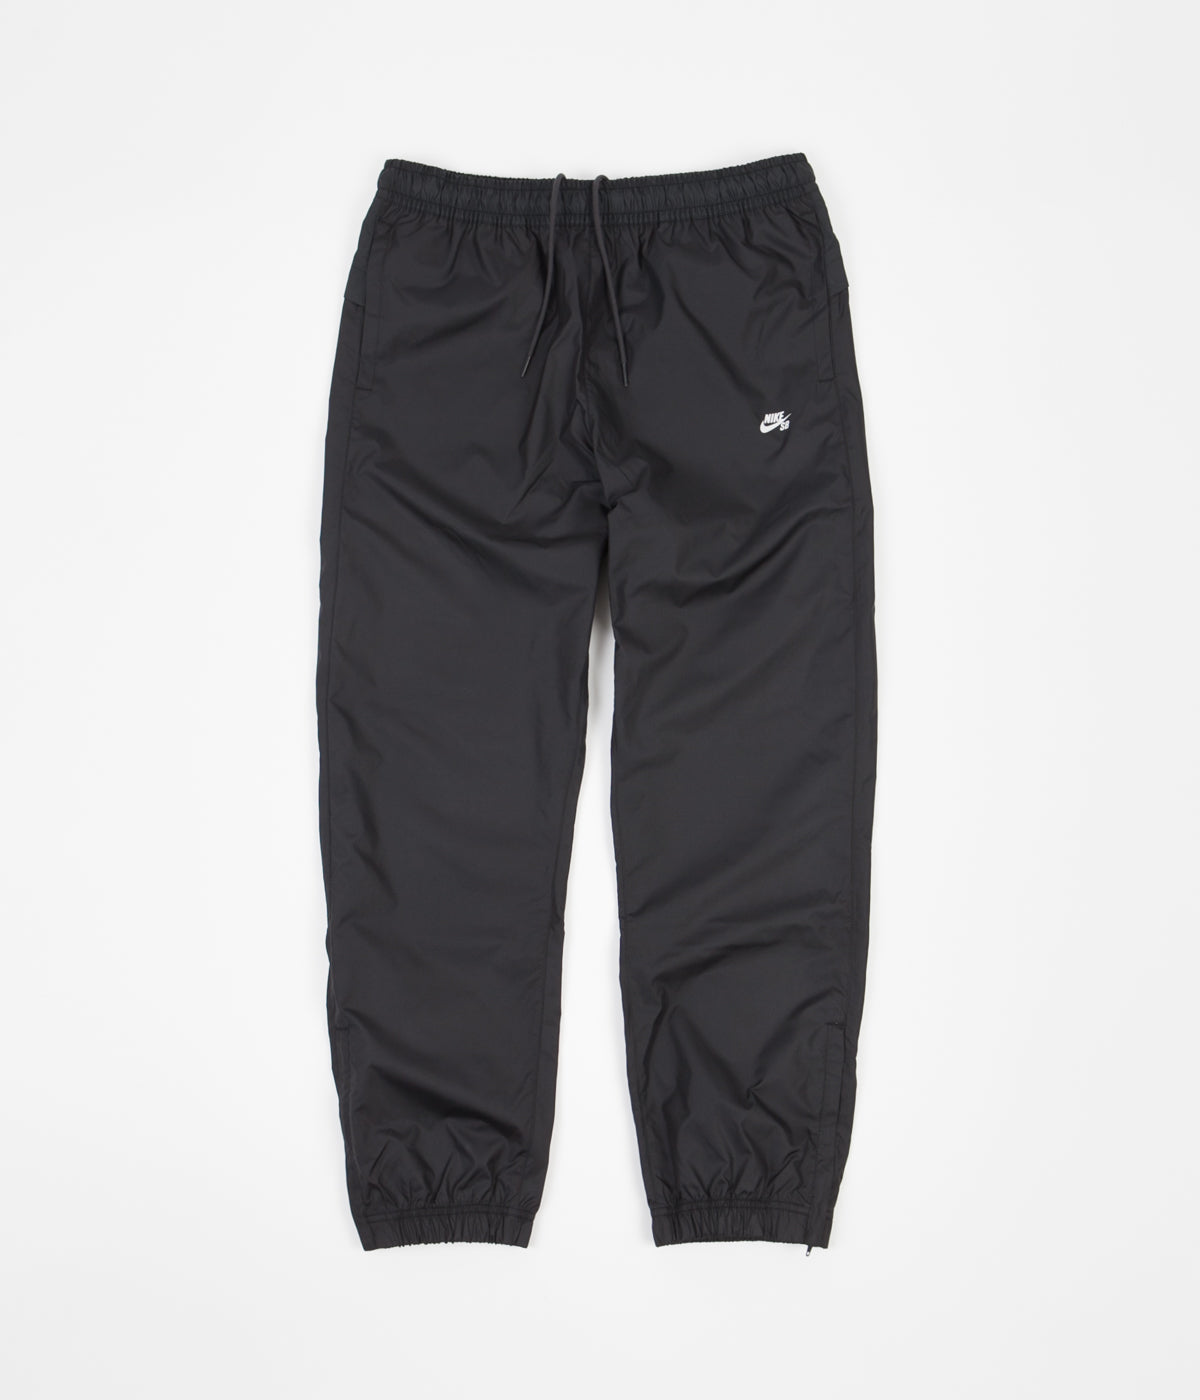 Nike SB Skate Track Pants - Black / Off Noir / Vast Grey